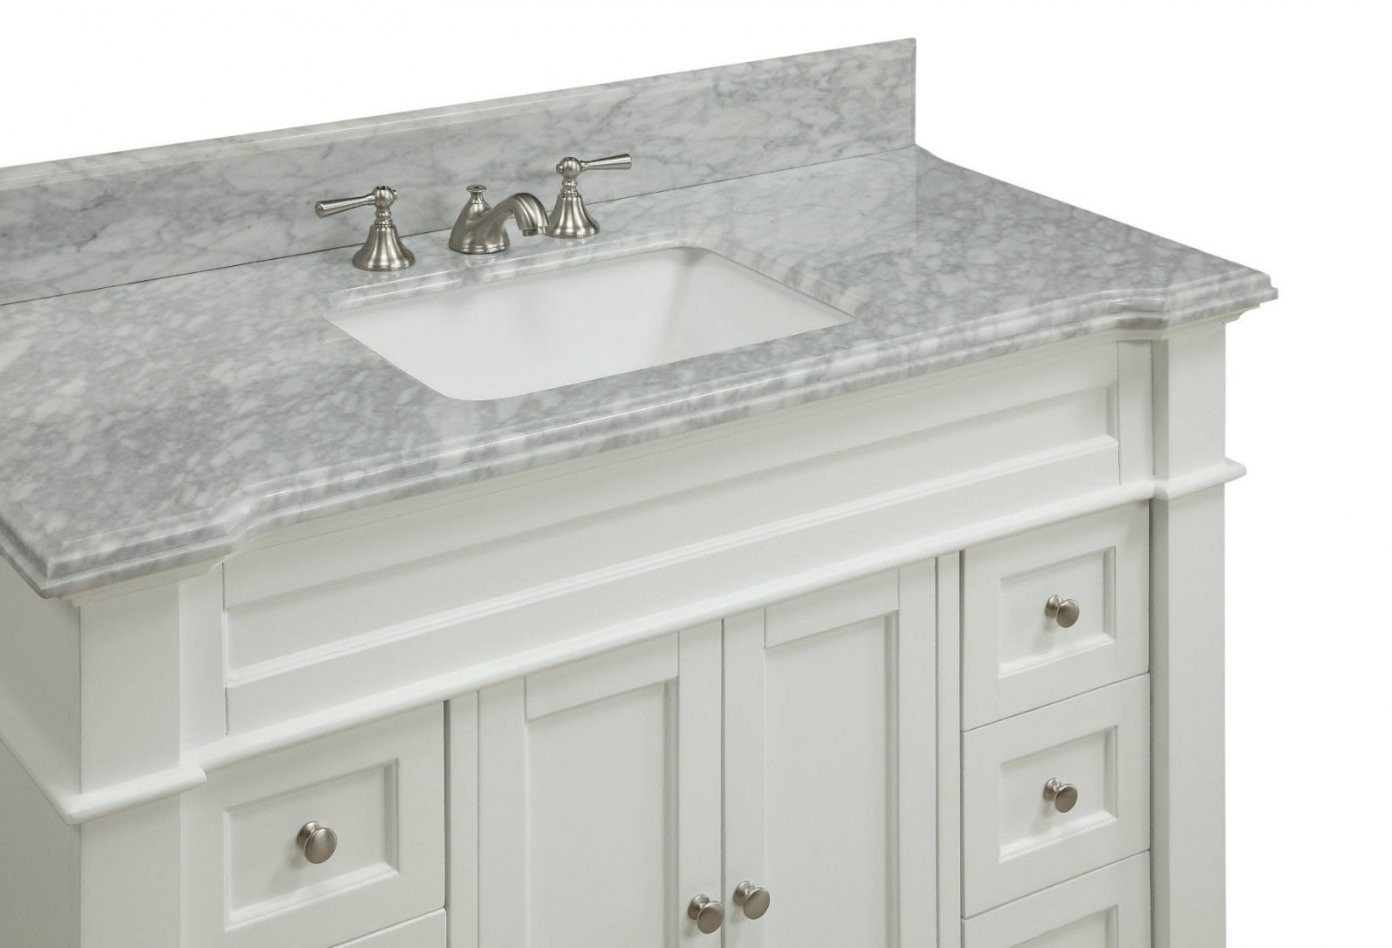 Lovely 42 Inch Bathroom Vanity Combo - Espan inside Beautiful 42 Inch Bathroom Vanity Combo